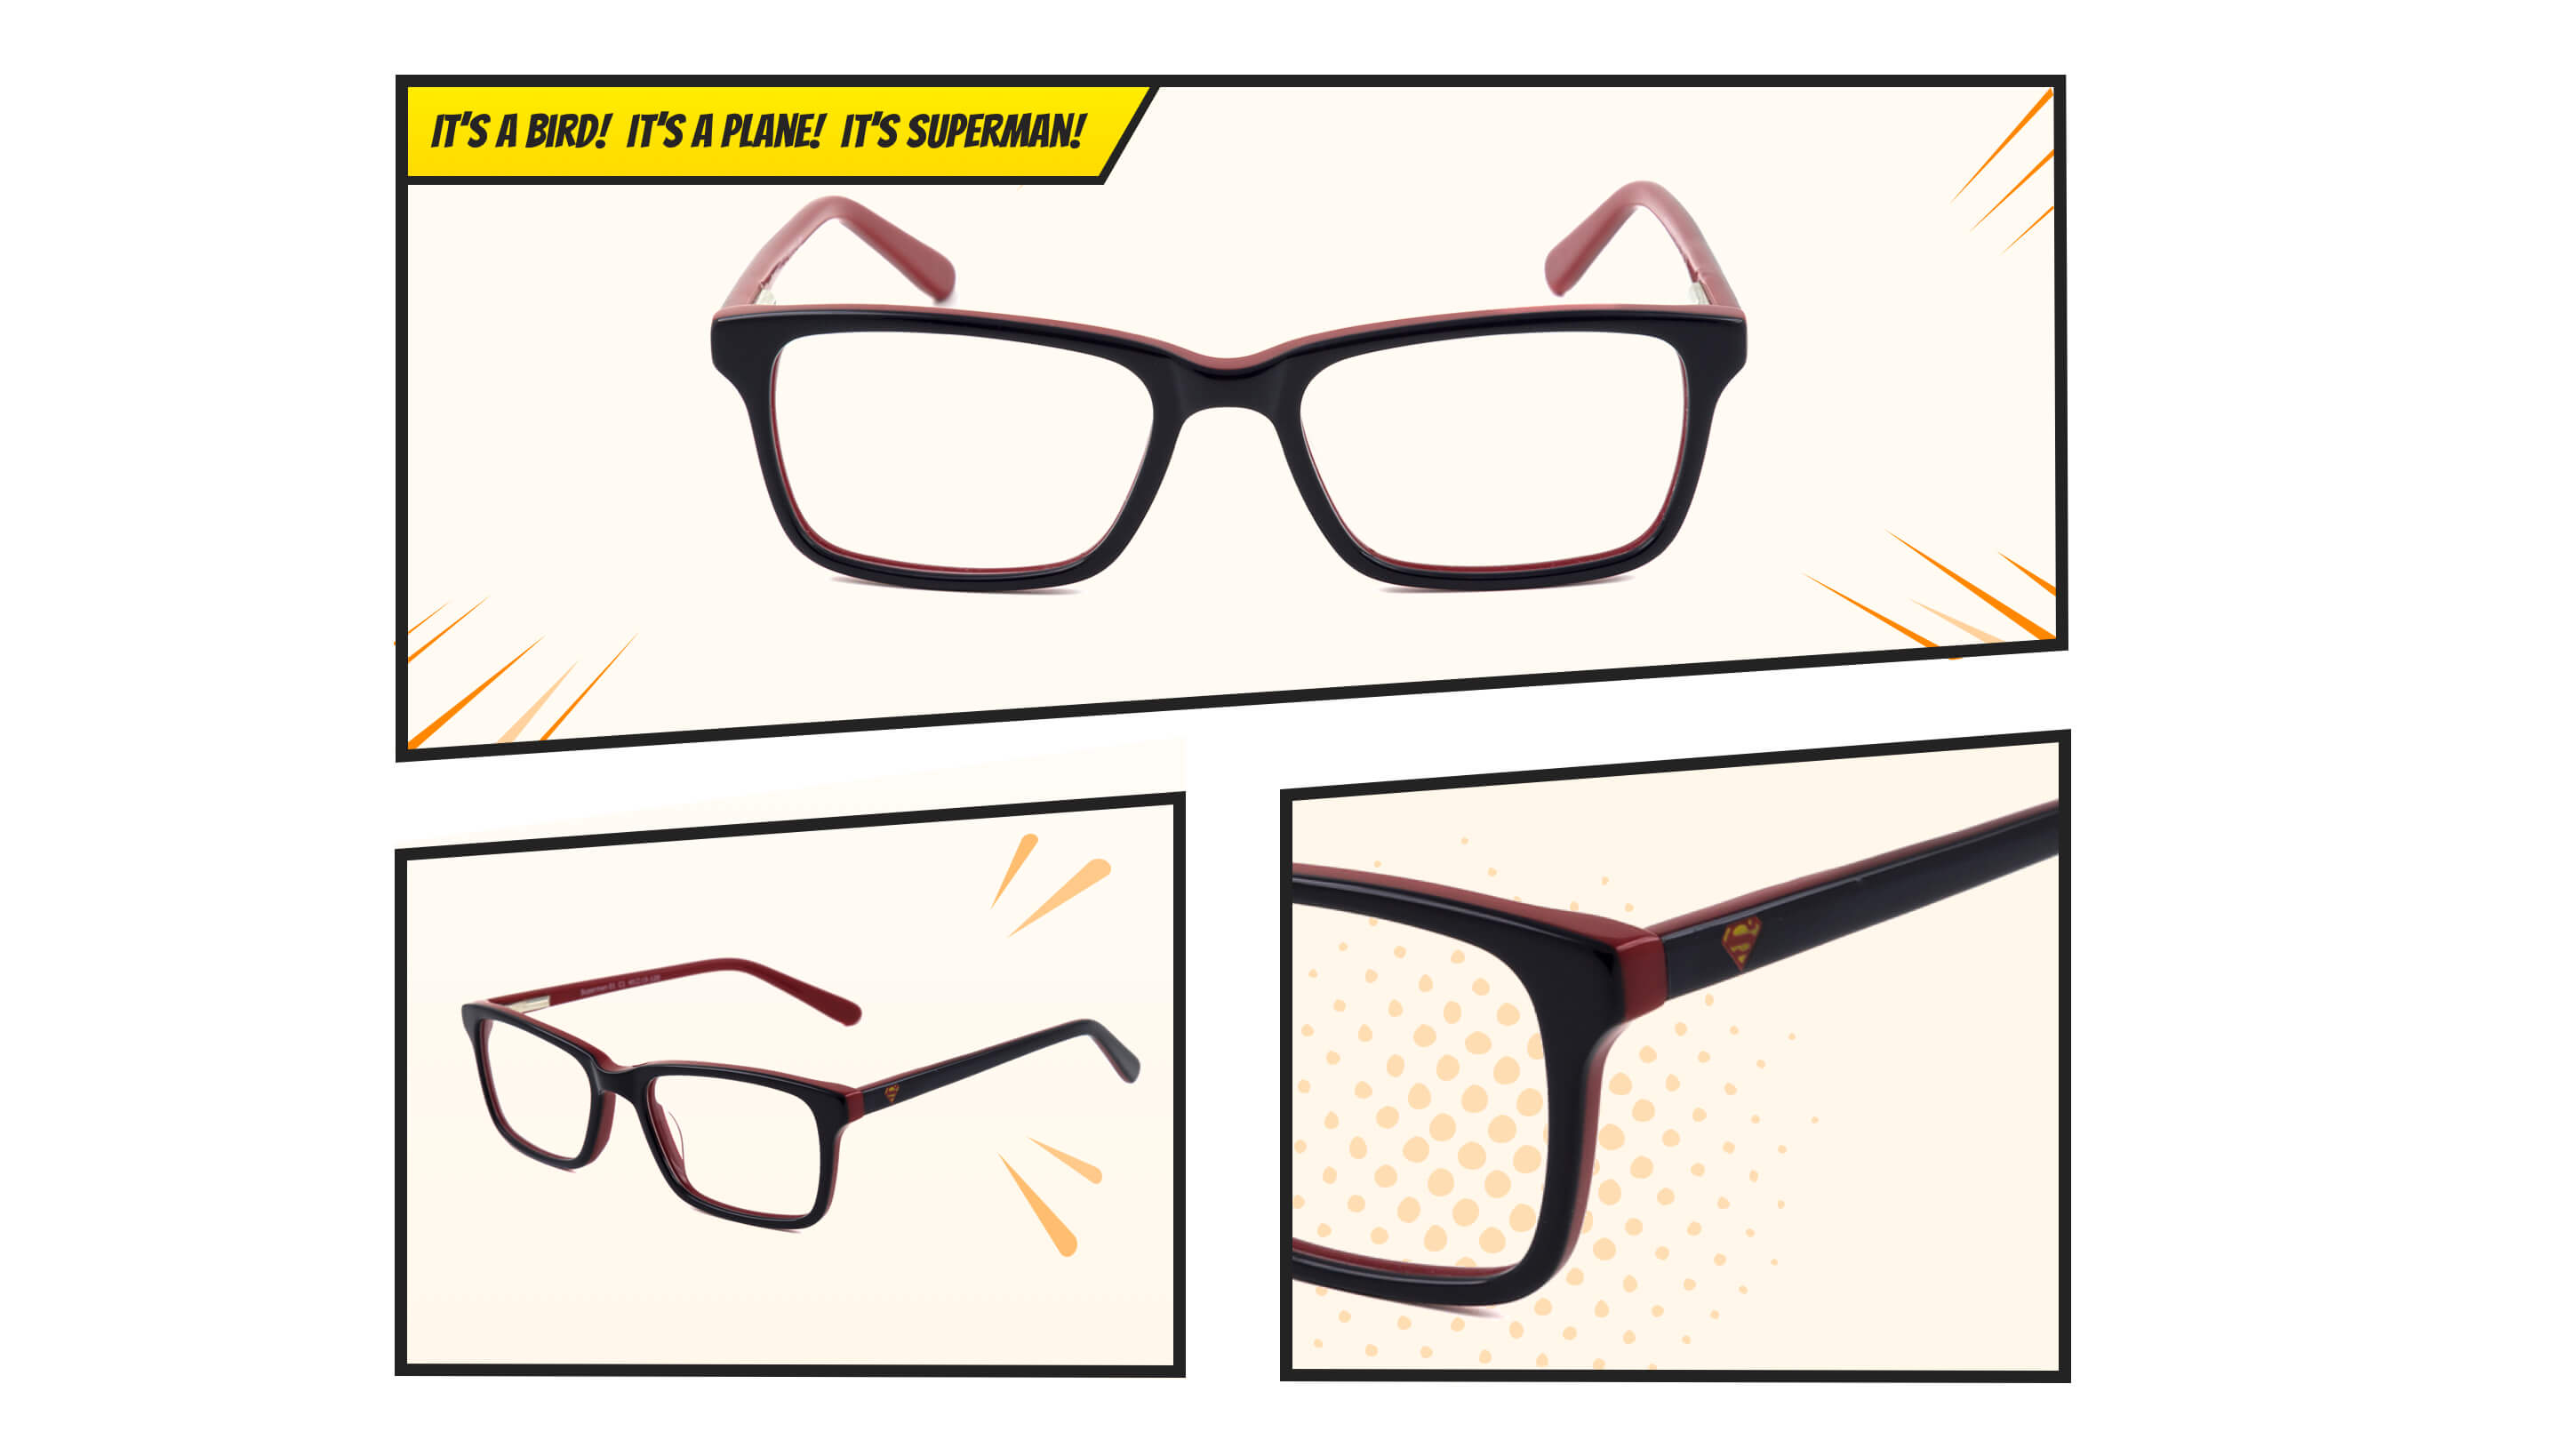 It's a bird! It's a plane! It's Superman. A pair of black and pink Superman glasses.